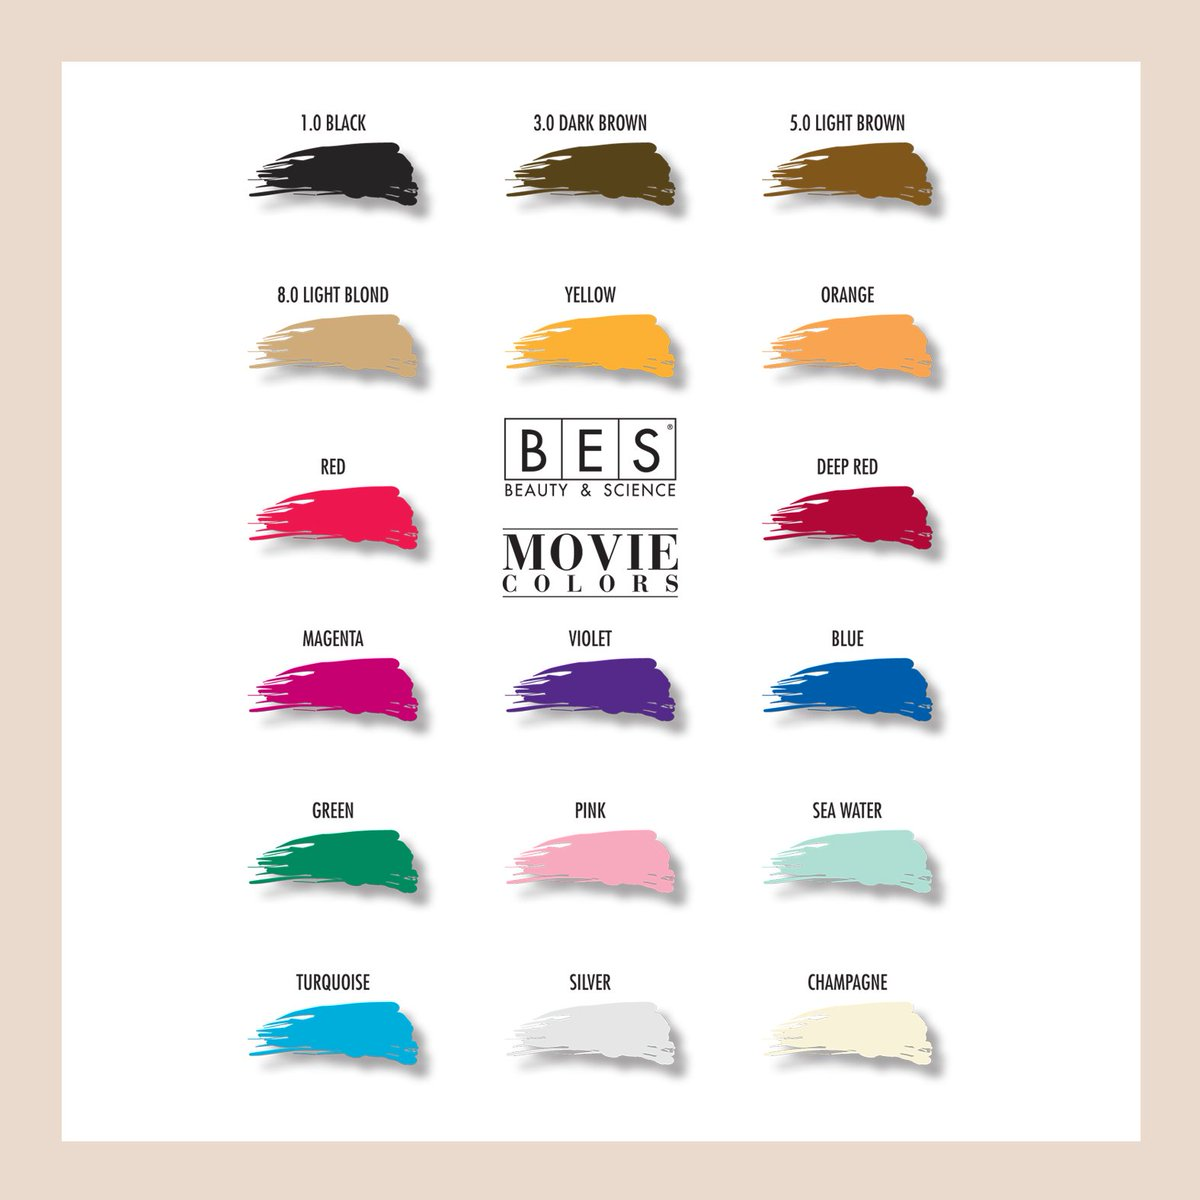 Movie color bes